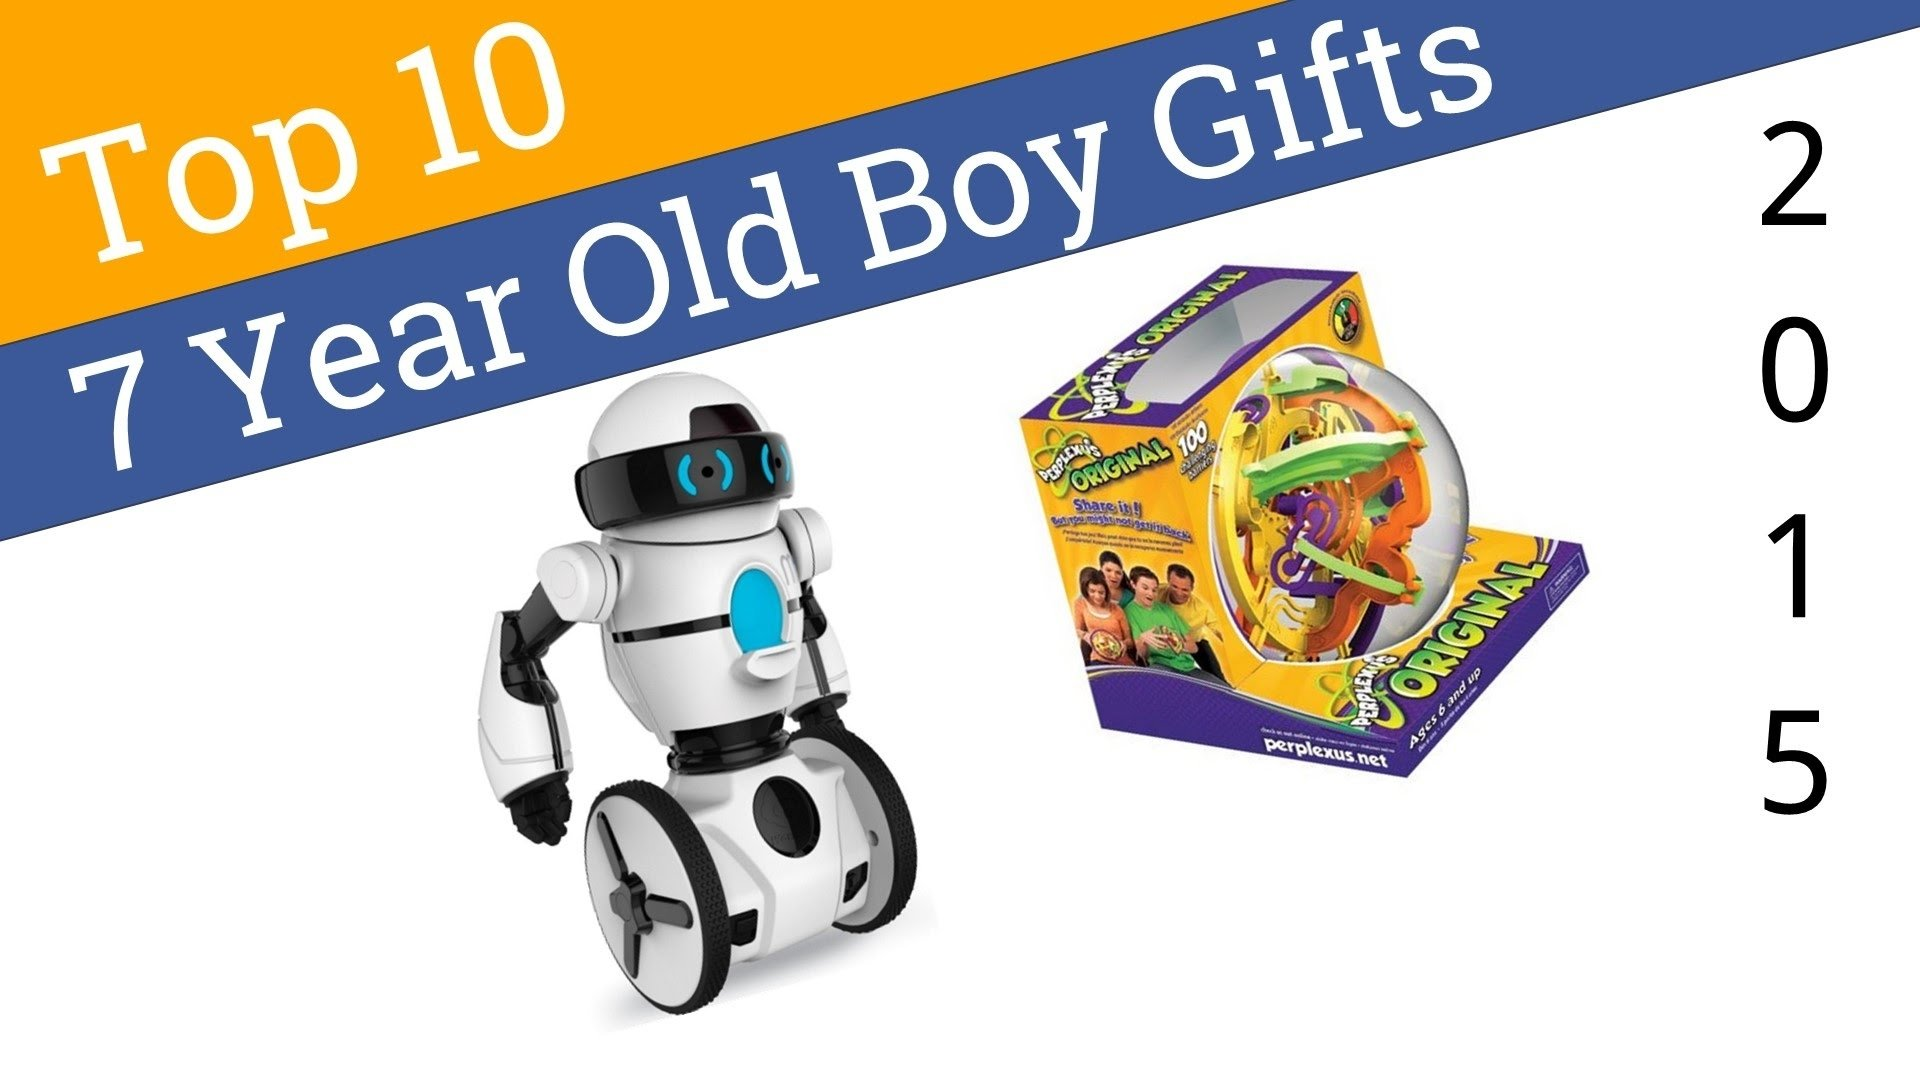 10 Cute 7 Year Old Birthday Gift Ideas 10 best 7 year old boy gifts 2015 youtube 7 2020